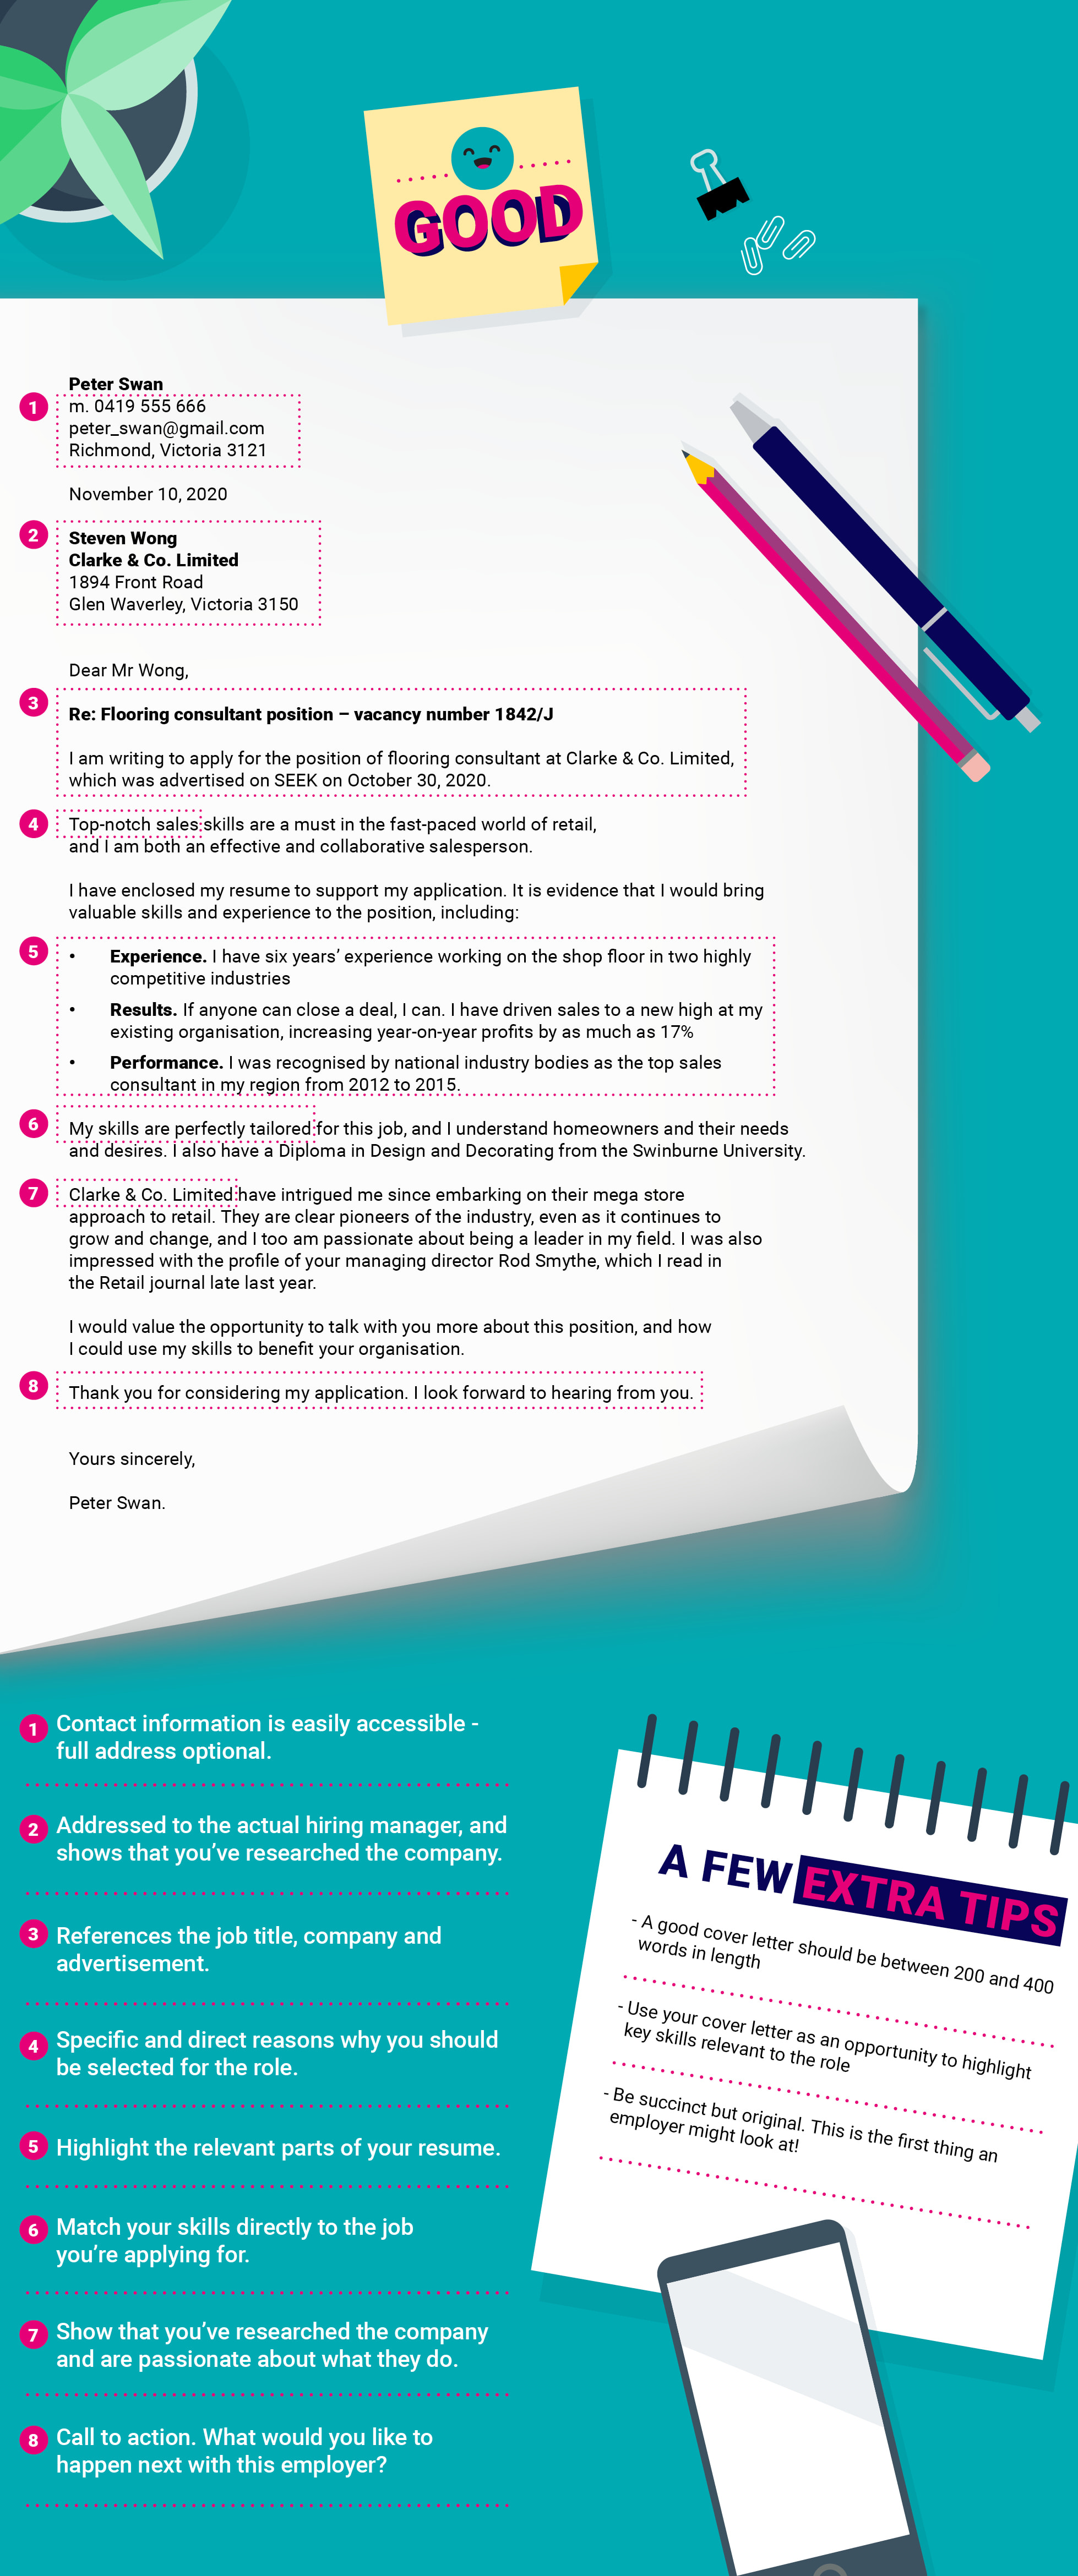 Examples Of What Makes A Good Cover Letter Versus A Bad One Seek Career Advice